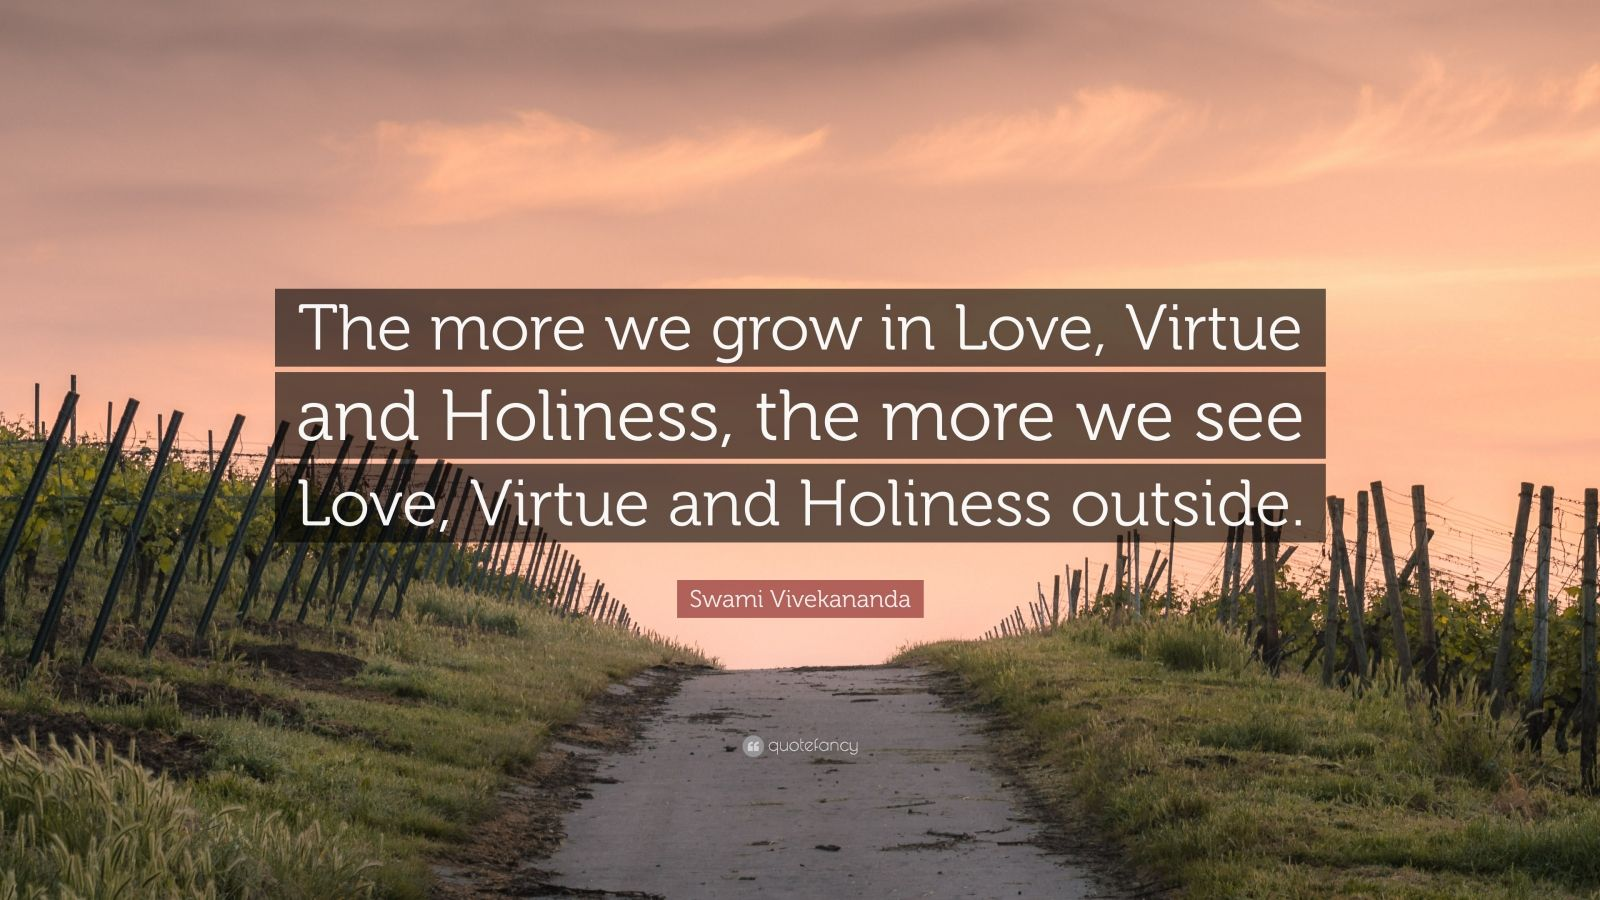 """Swami Vivekananda Quote: """"The more we grow in Love, Virtue and Holiness, the more we see Love, Virtue and Holiness outside."""""""